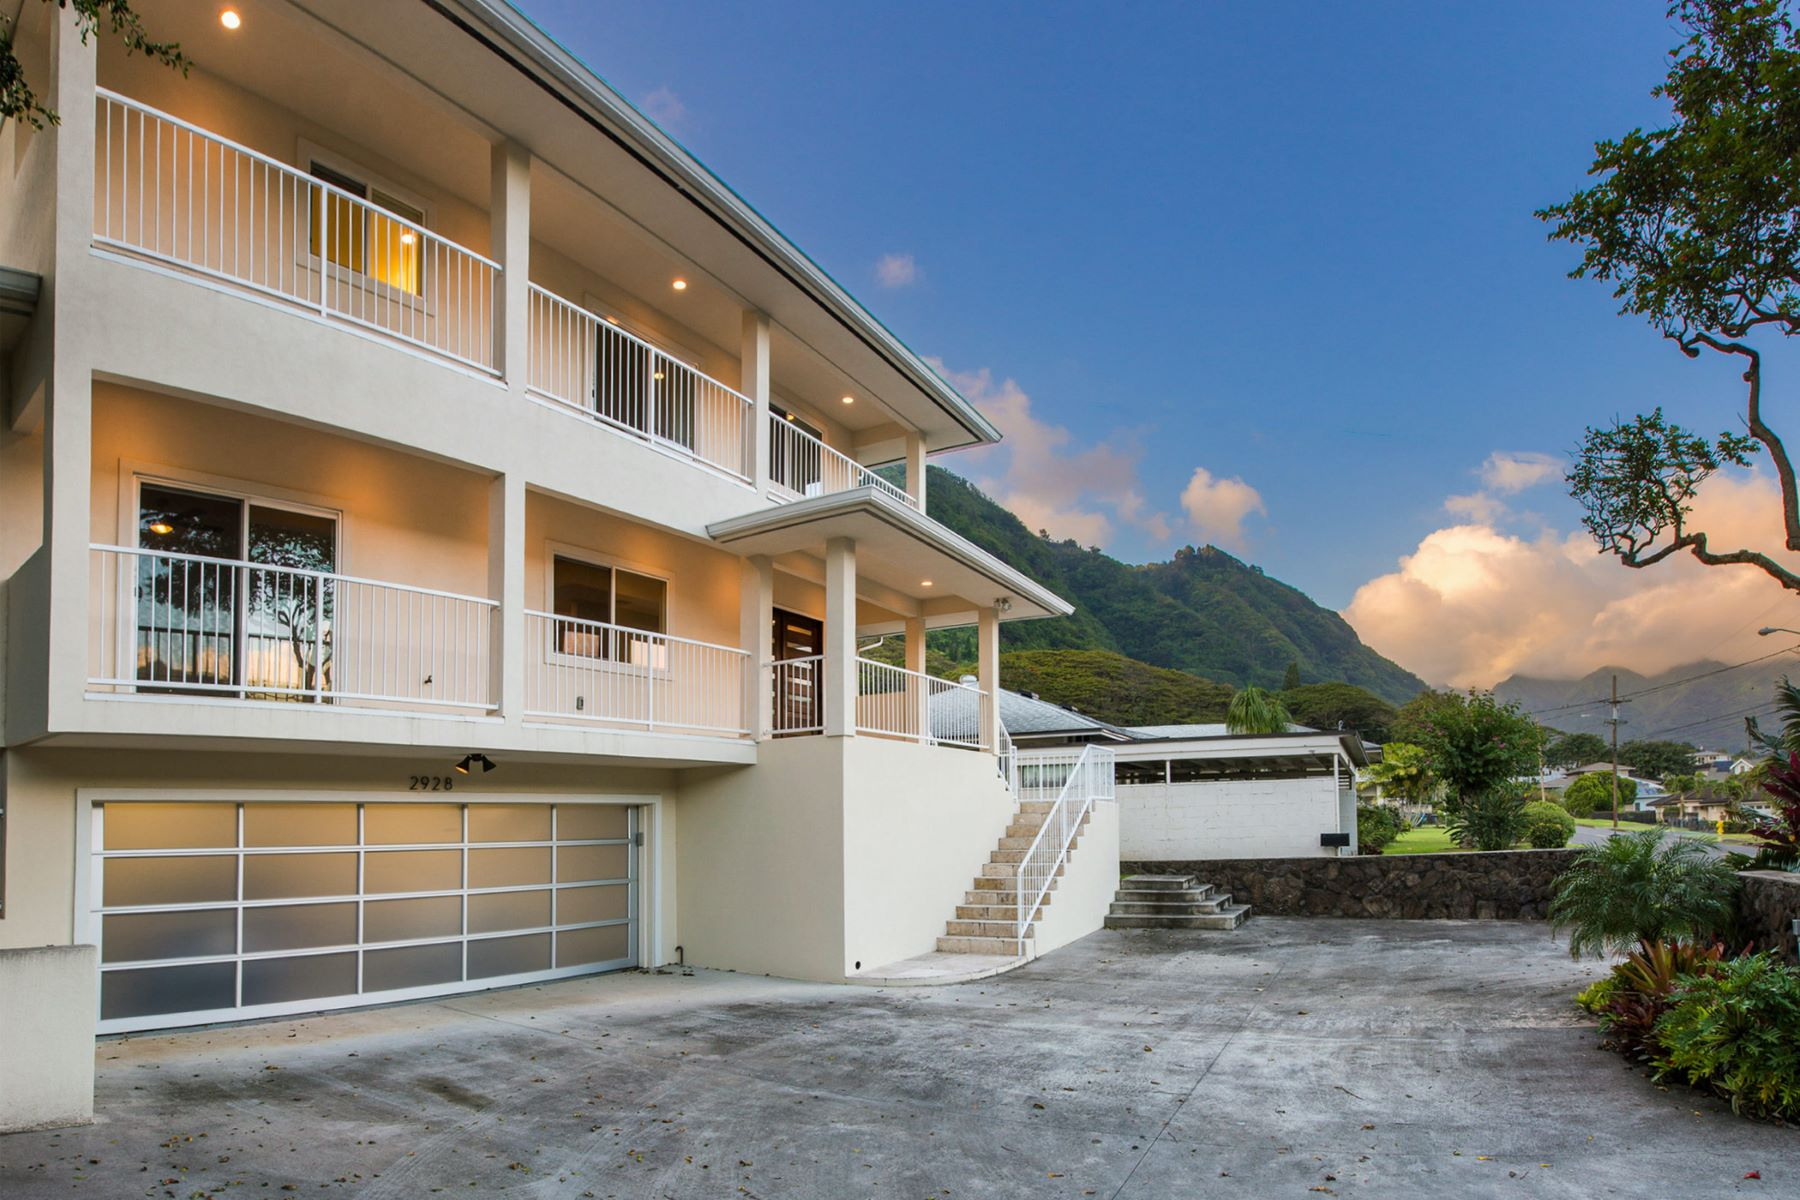 Single Family Home for Sale at Lush Manoa Valley 2928 Oahu Ave Honolulu, Hawaii 96822 United States